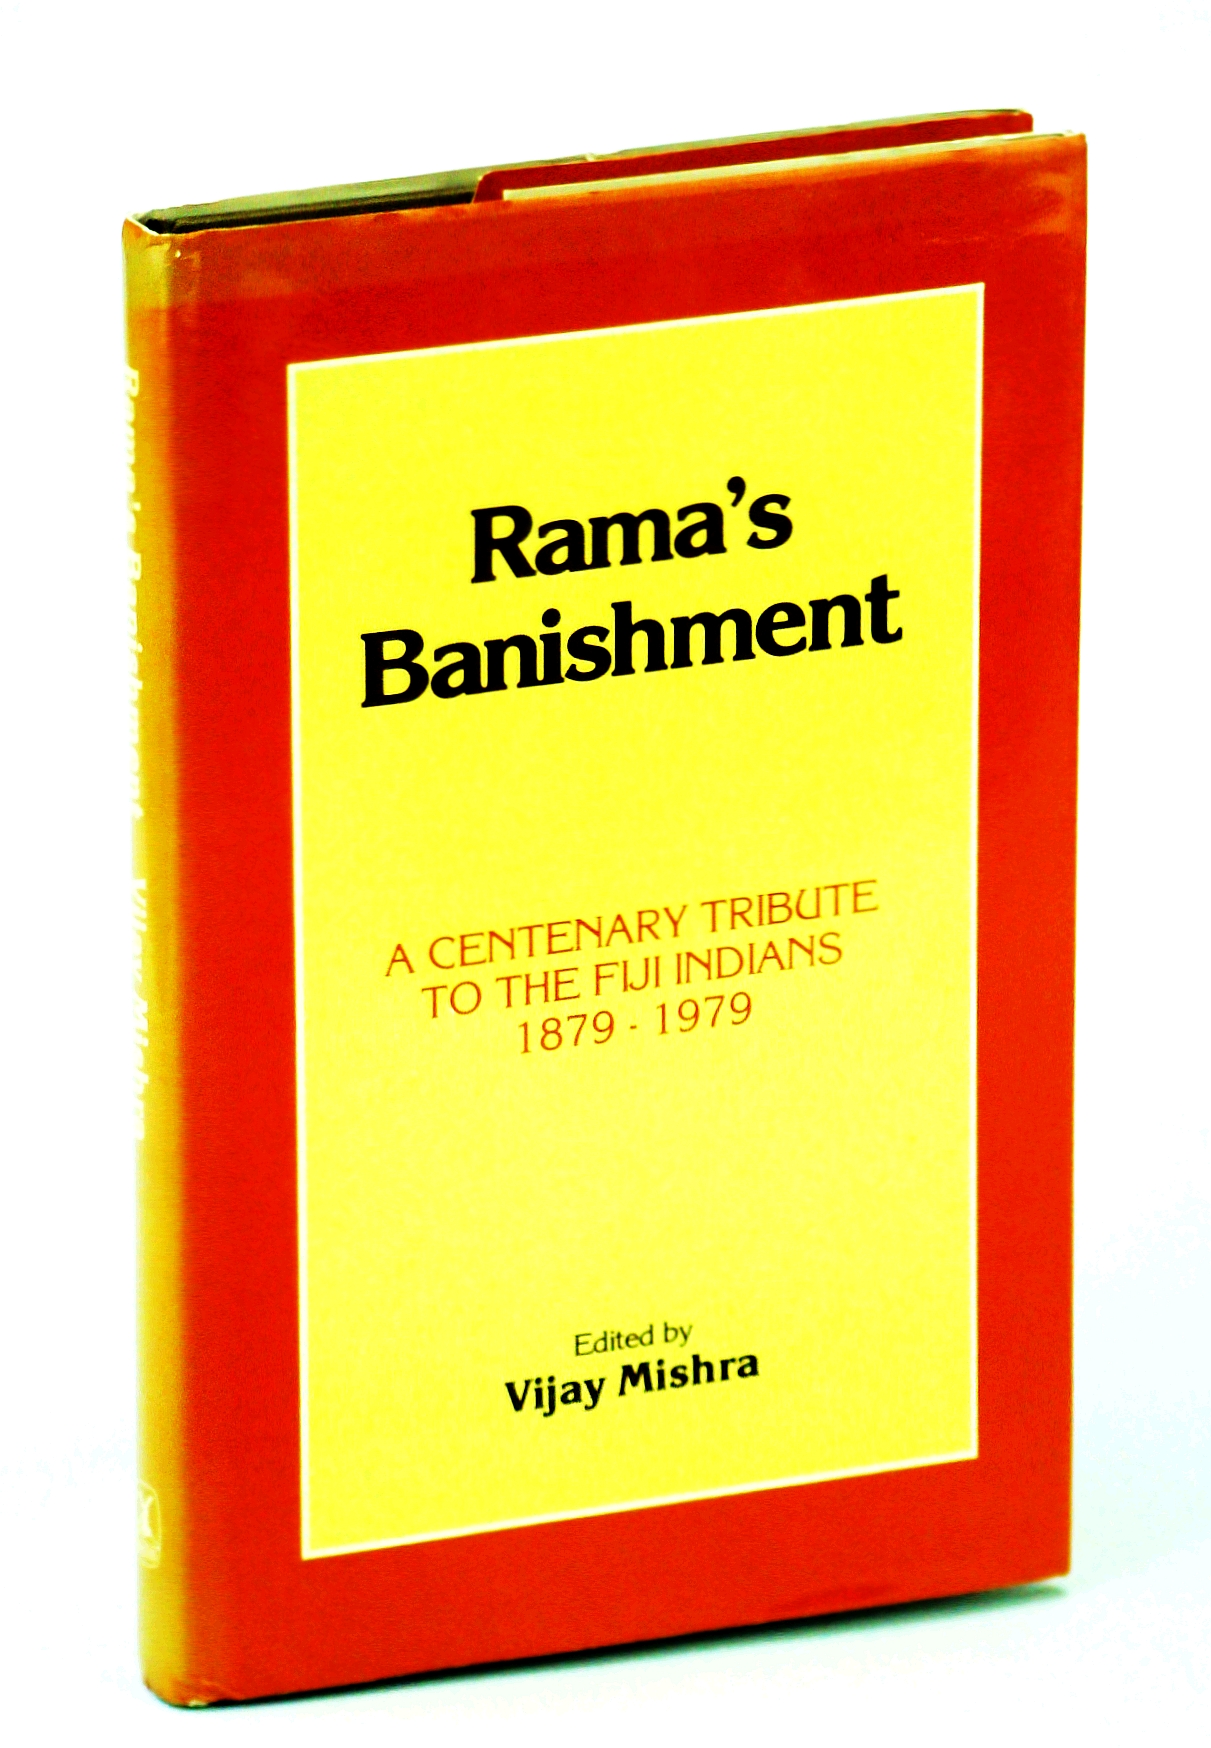 Image for Rama's Banishment: A Centenary Tribute to the Fiji Indians, 1879-1979. Ed by Vijary Mishra (144P)